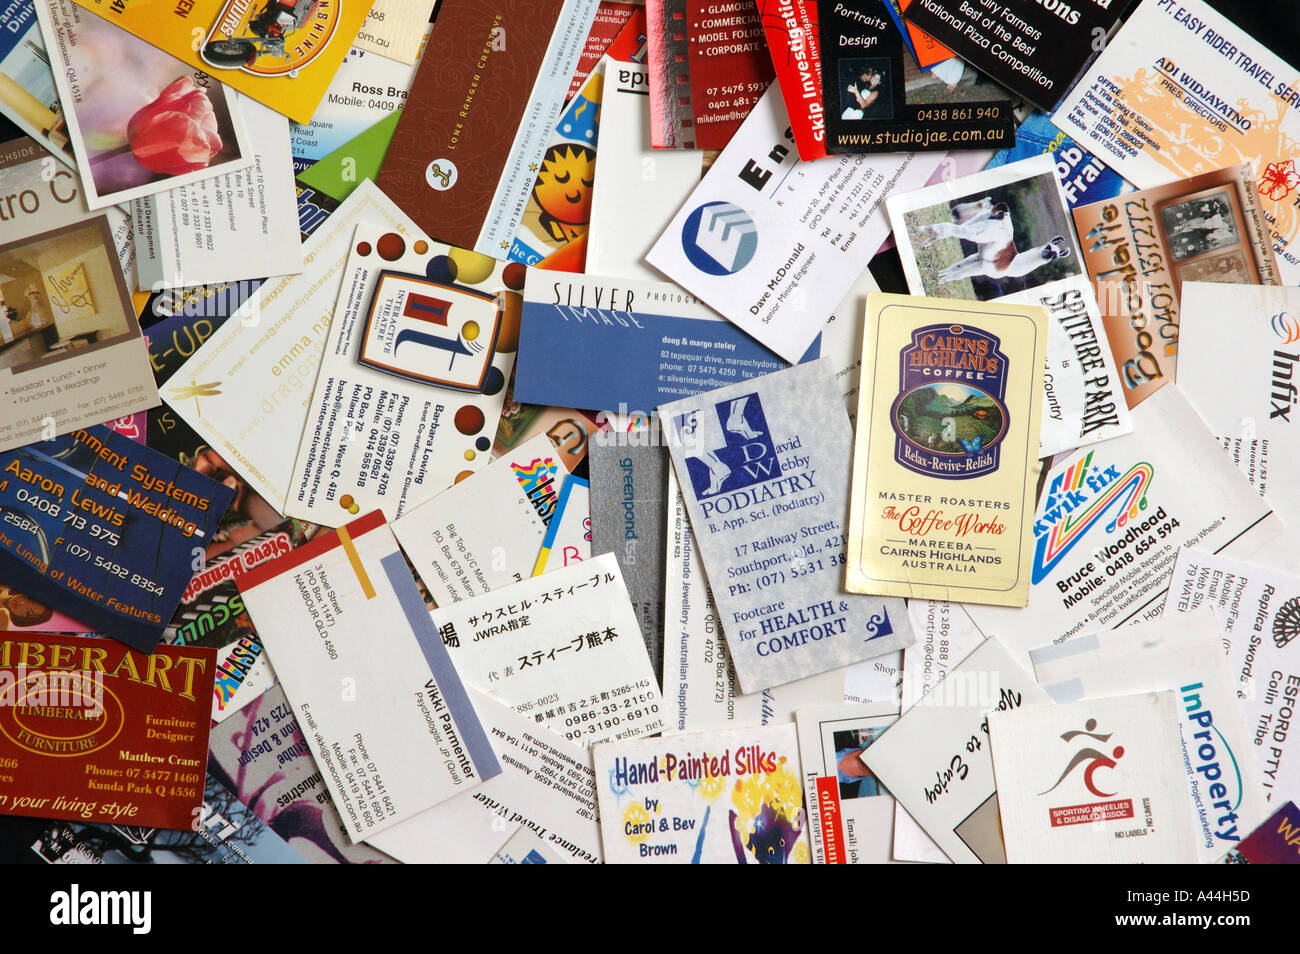 pile of mixed business cards dsca 2041 Stock Photo: 3567964 - Alamy